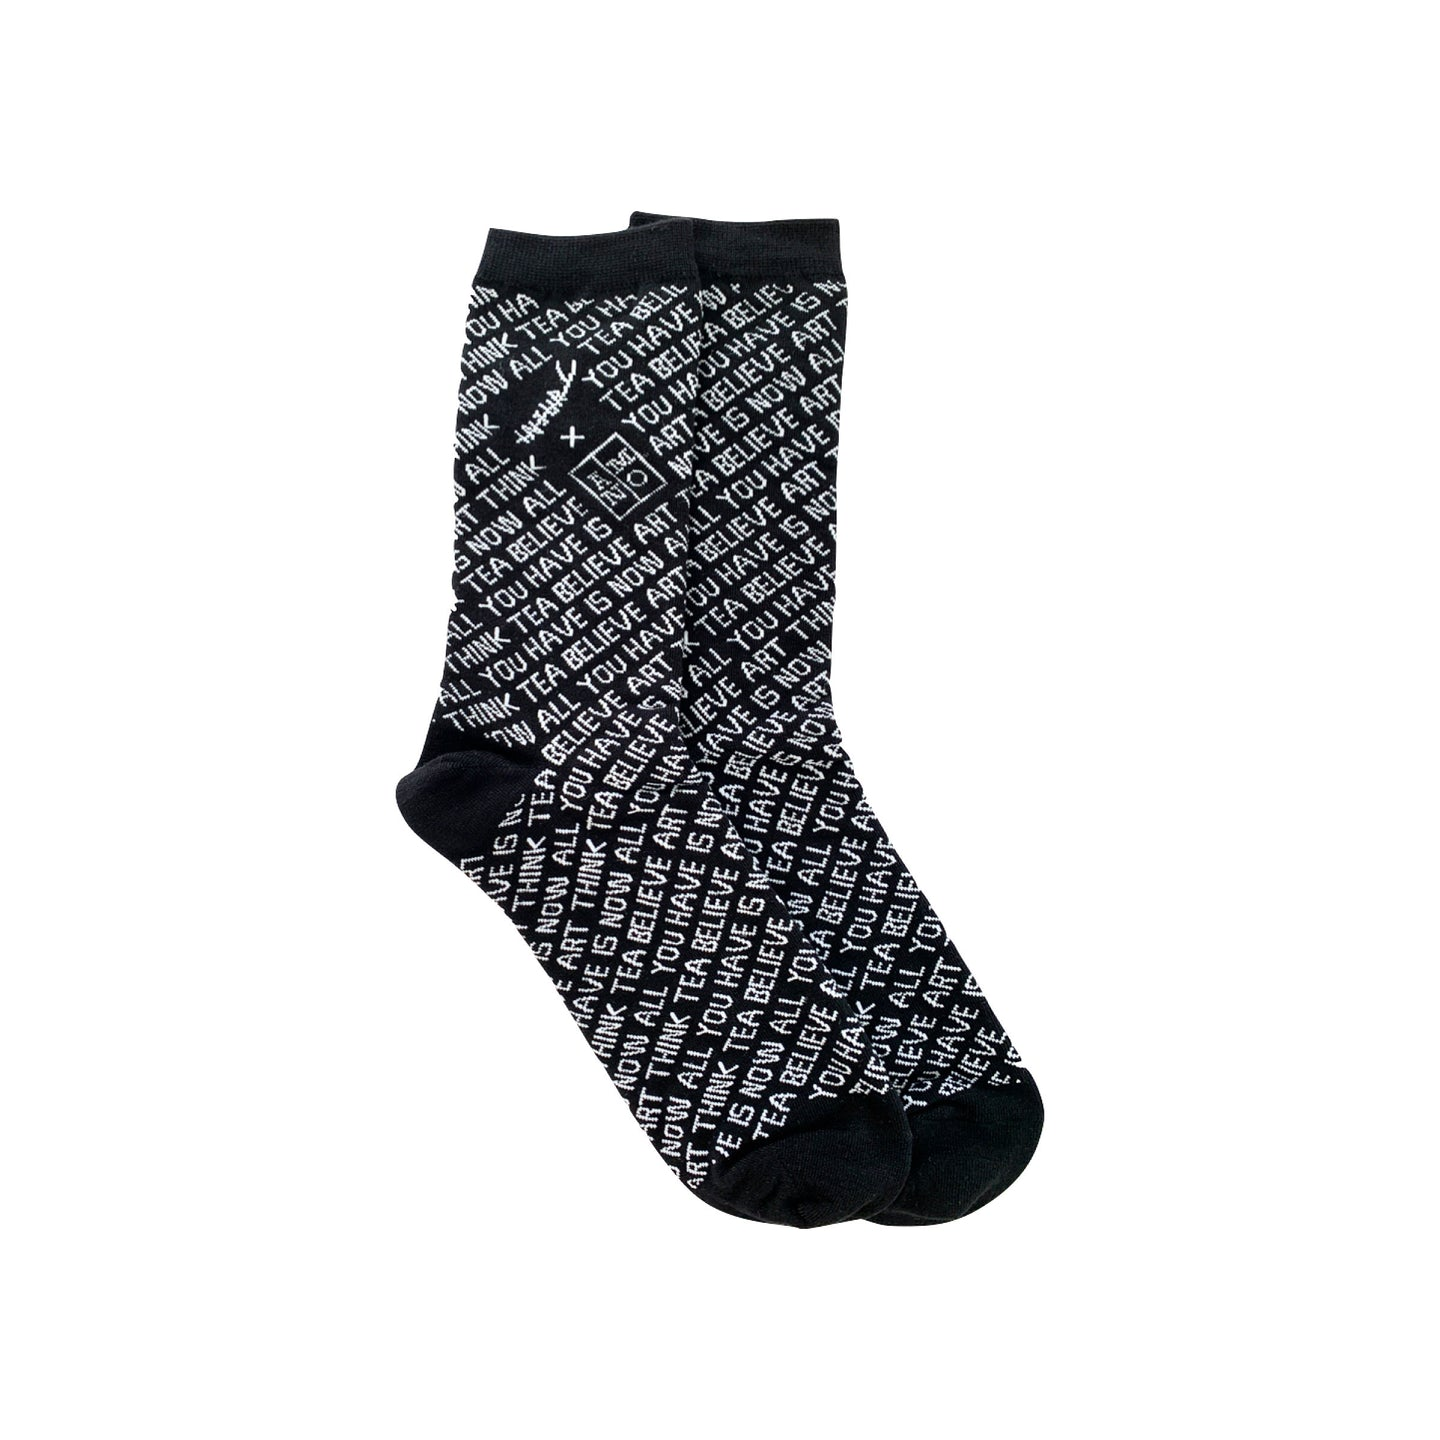 The INJURY x ANMO socks black